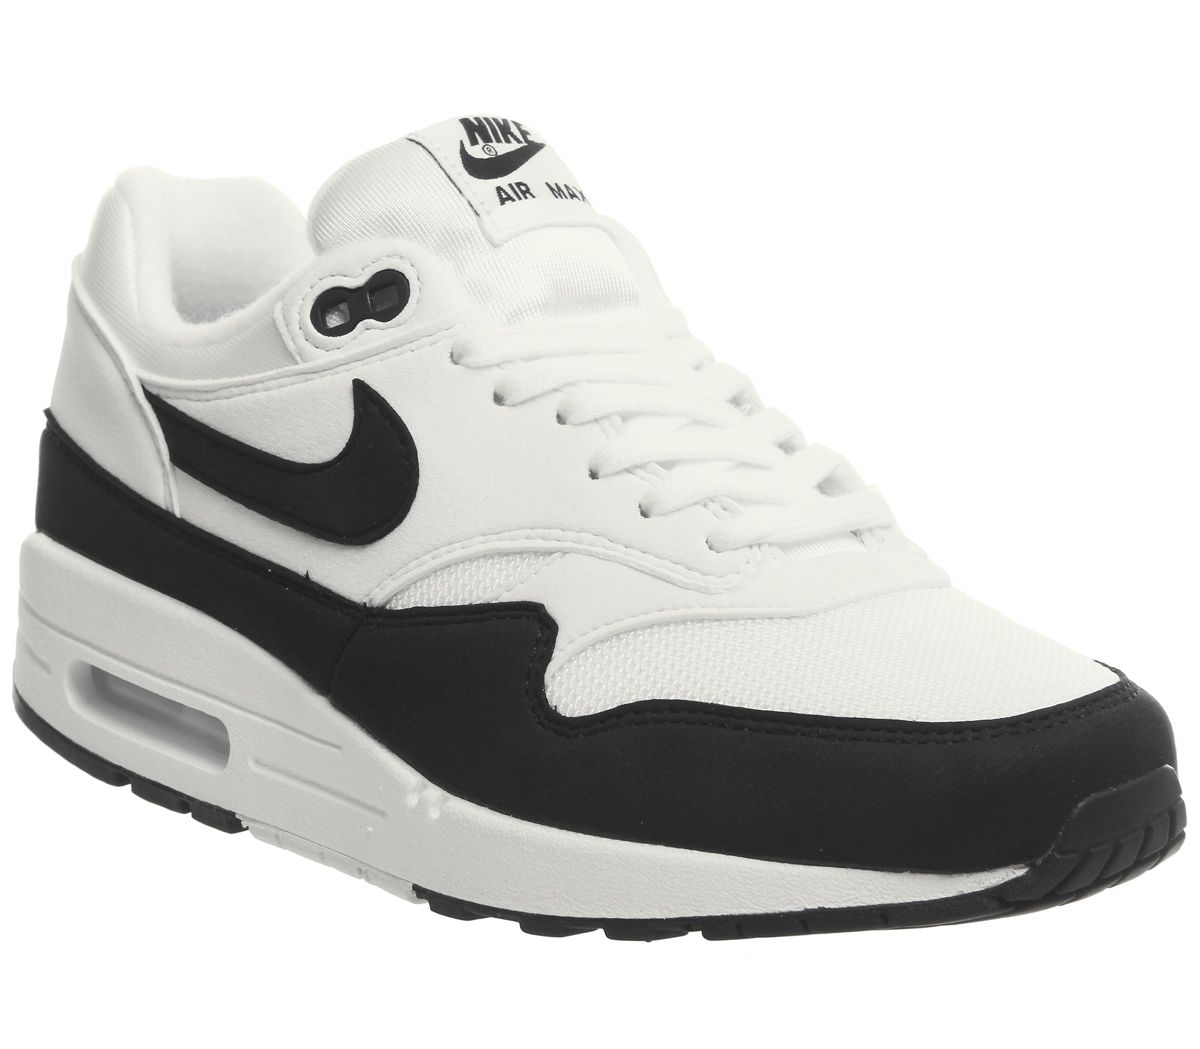 a5a75dcbc8d74 Nike Air Max 1 Trainers White Black F - Hers trainers